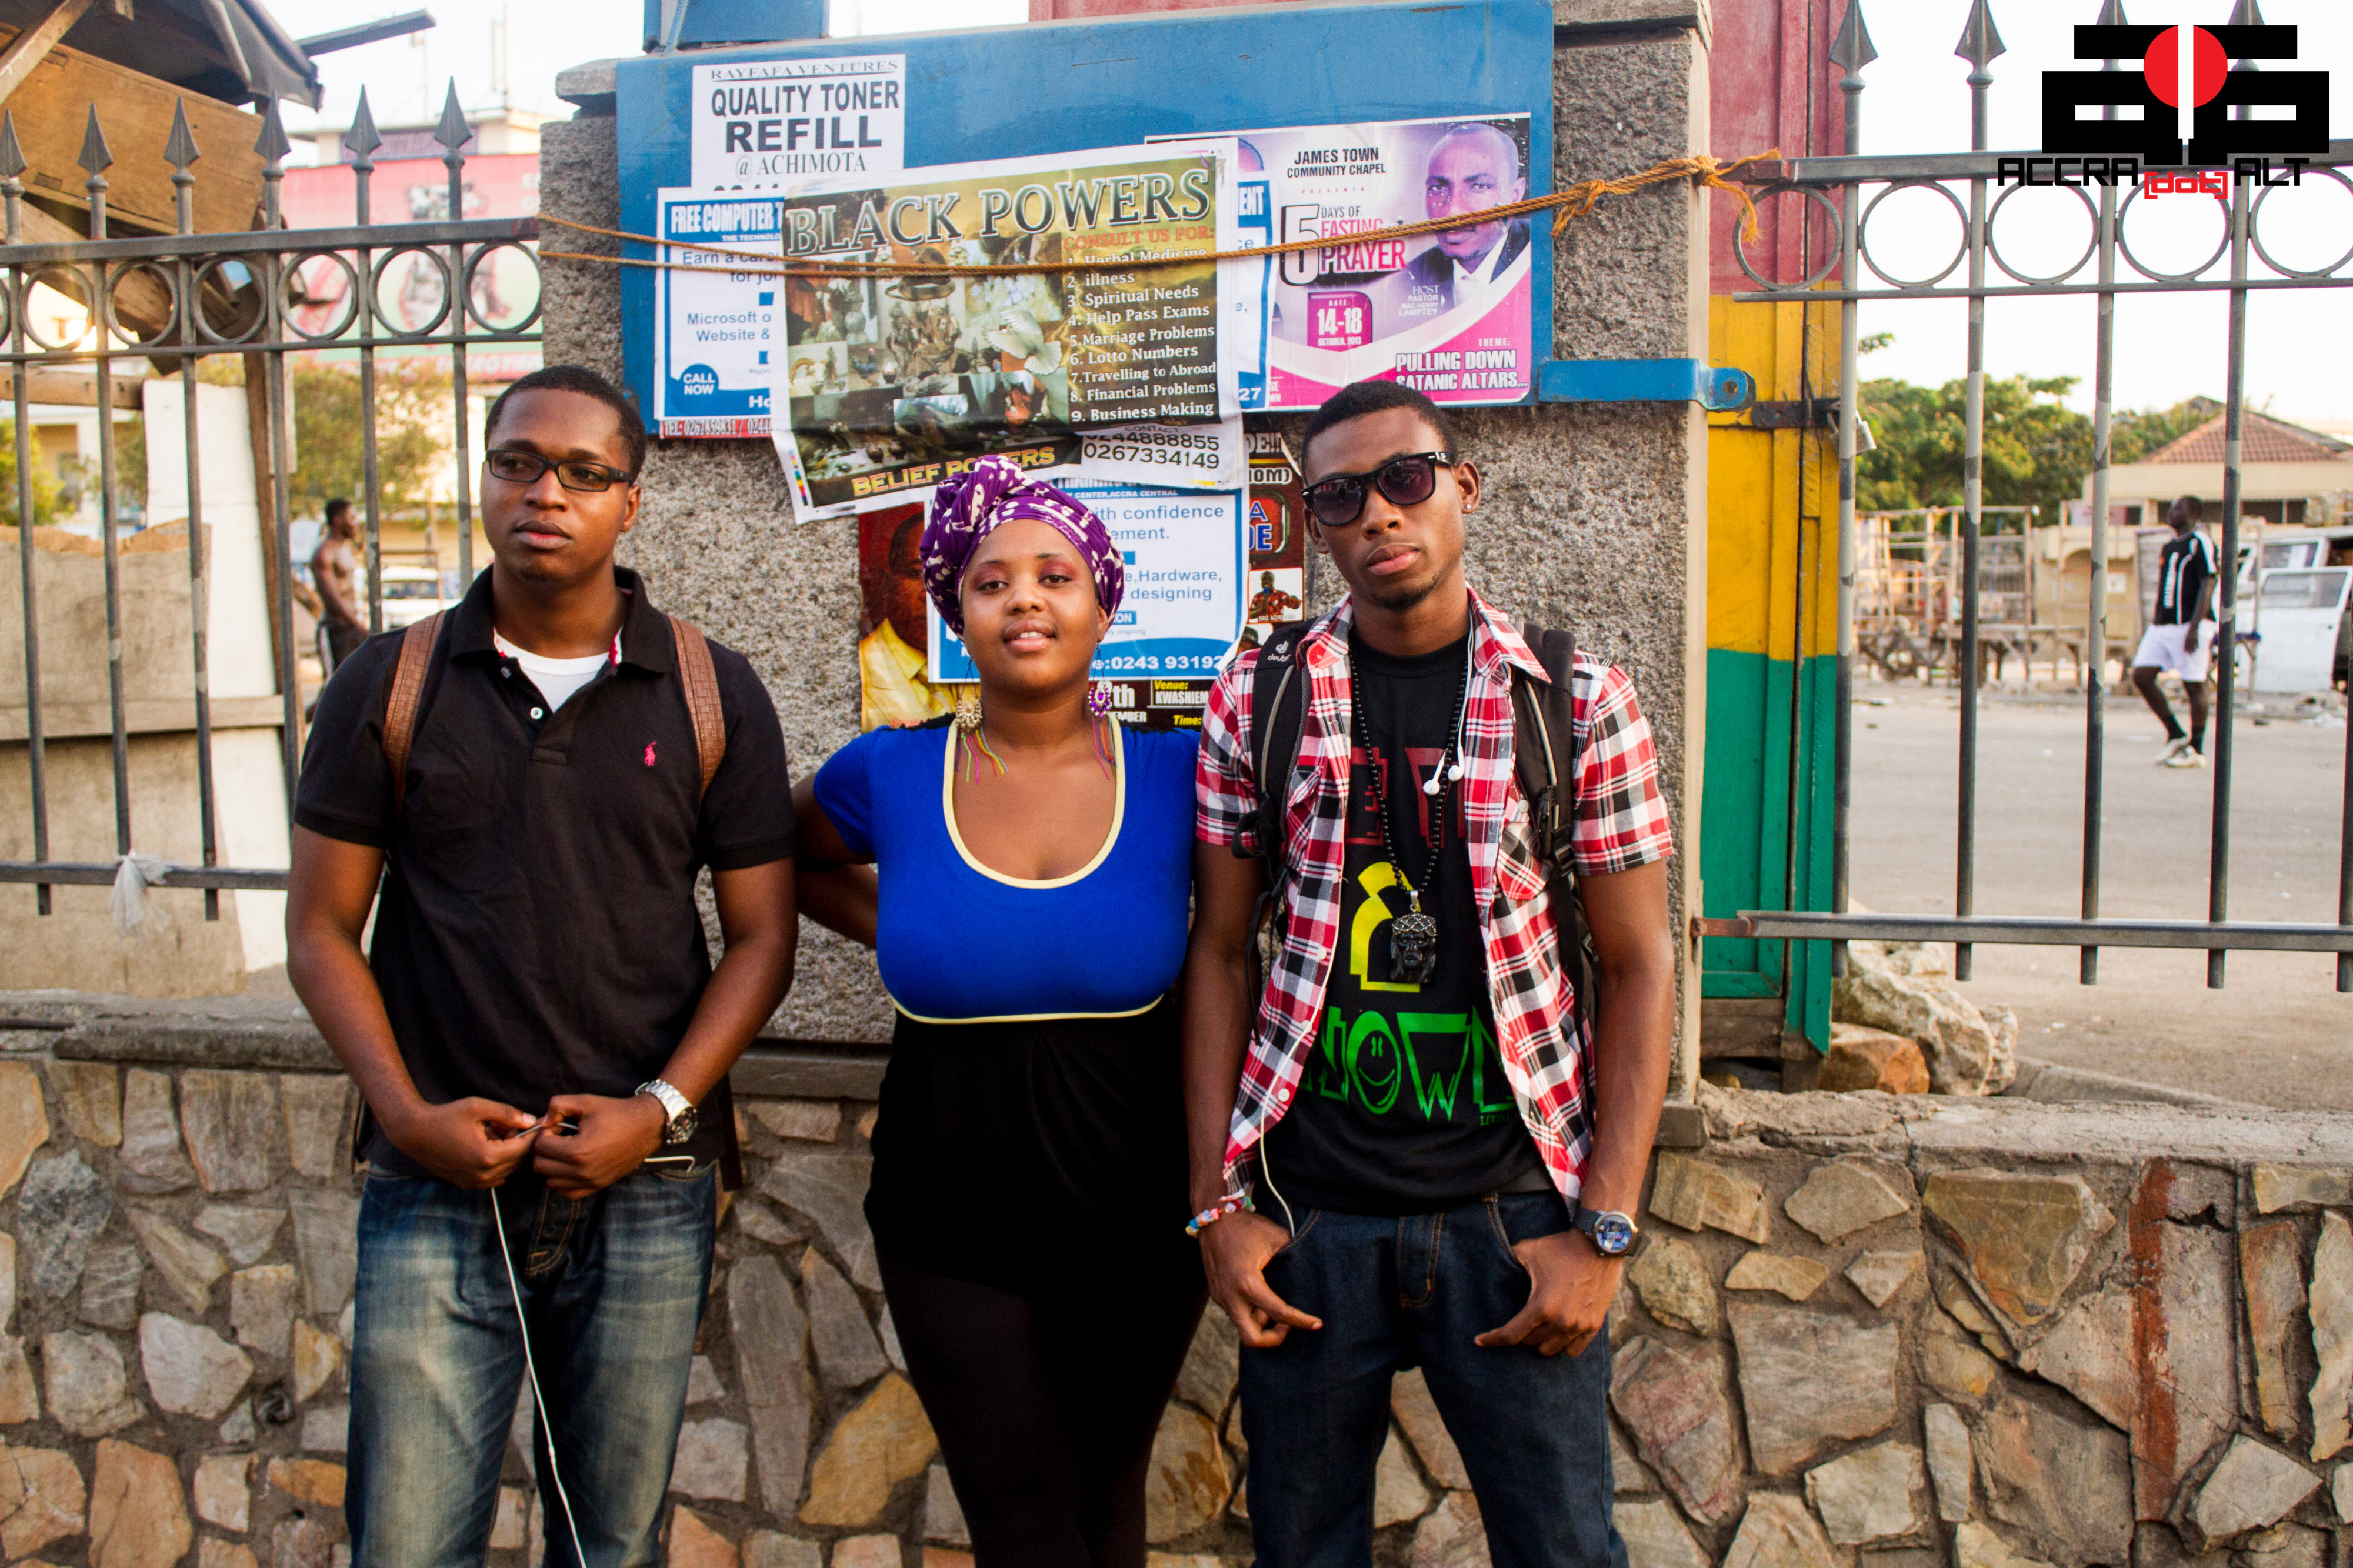 indie fuse- james town- accradotalt 2013- looney - kojo cue - michi 03